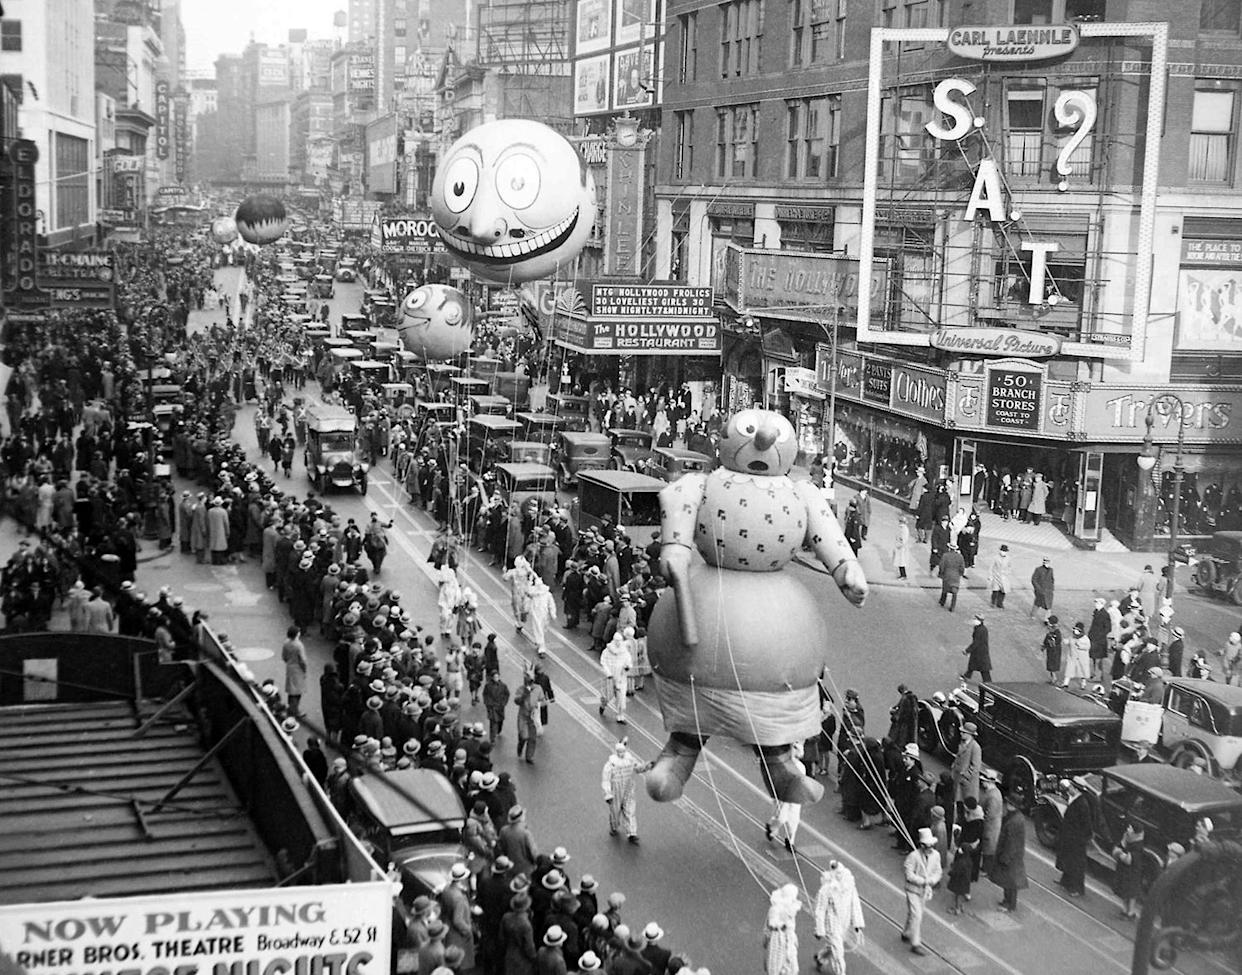 The Macy's Thanksgiving Day Parade passes down Broadway in New York on Nov. 27, 1930. The parade's first giant balloons debuted in 1927. (Photo: AP)